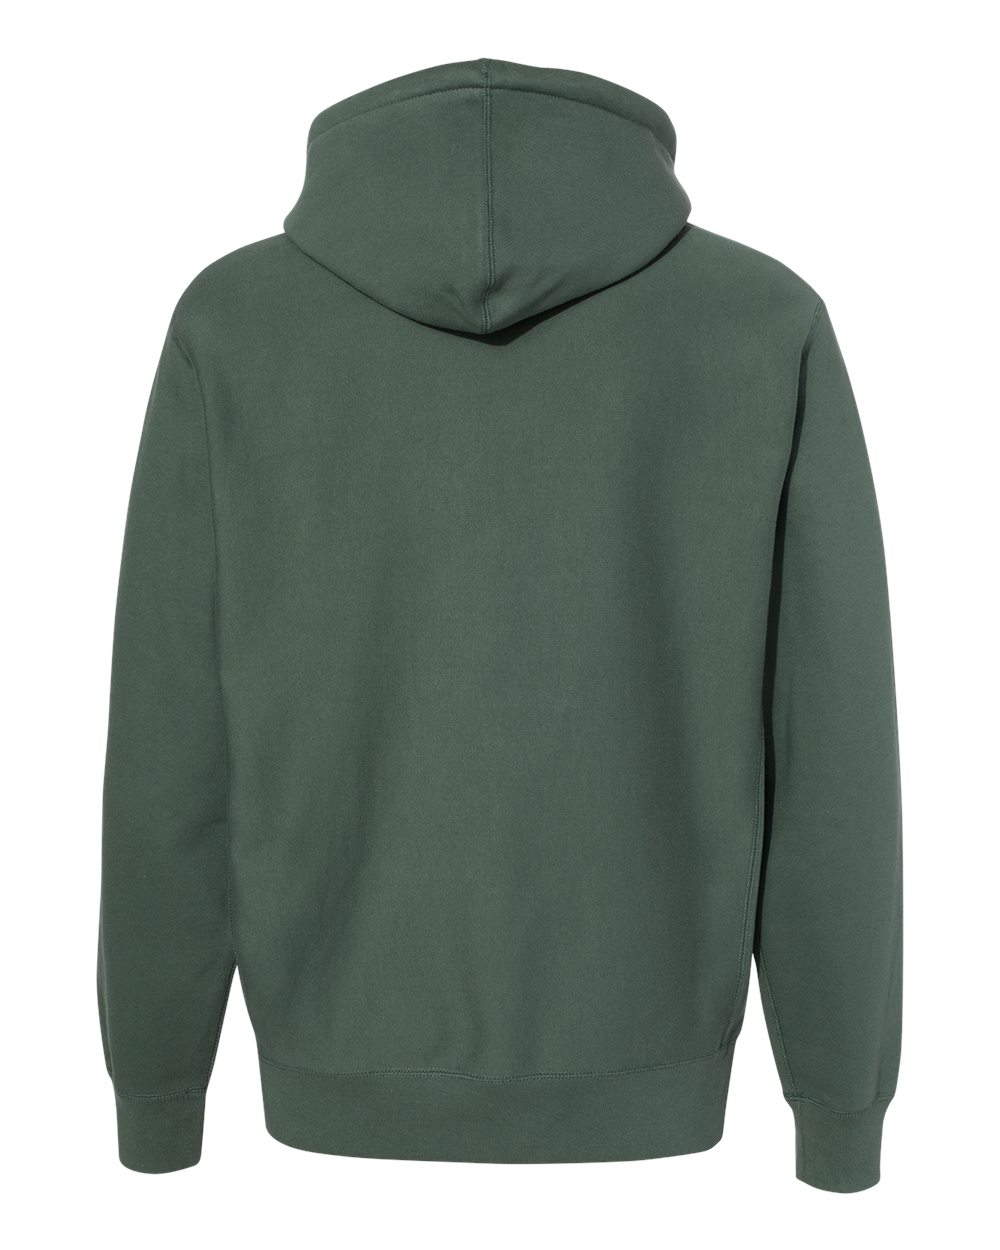 Independent-Trading-Co-Mens-Premium-Heavyweight-Cross-Grain-Hoodie-IND5000P thumbnail 7